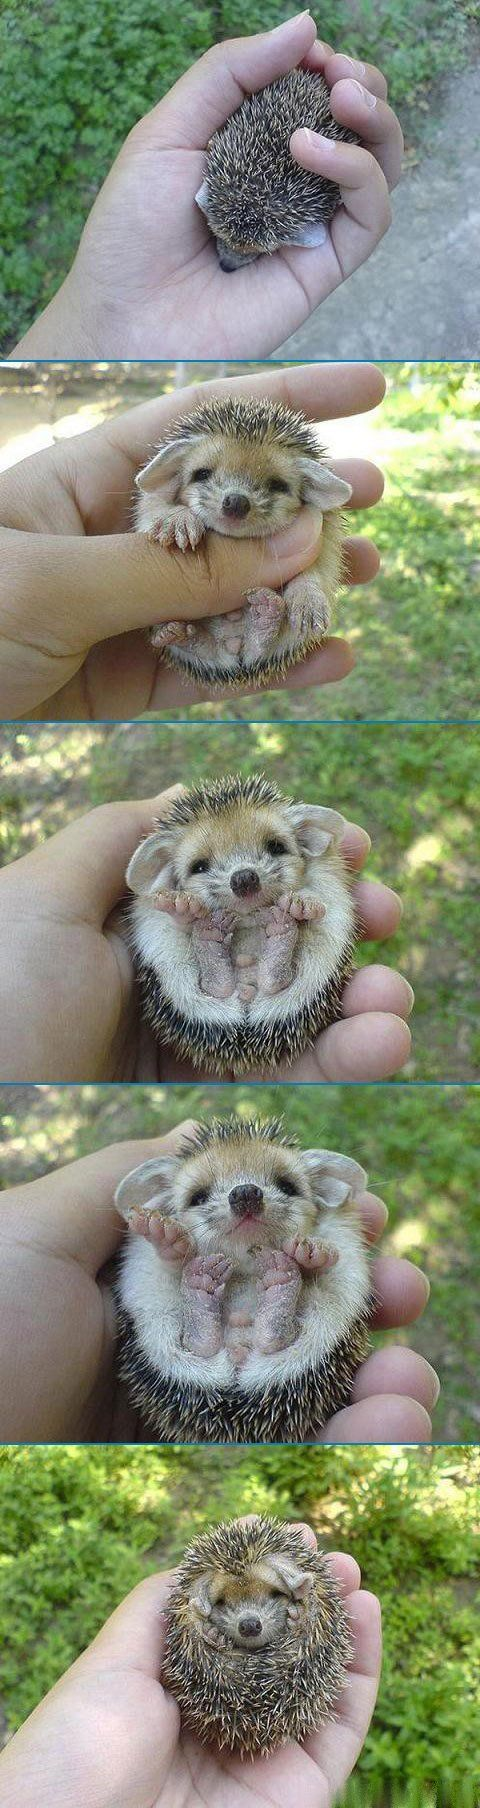 cutest thing i have ever seen